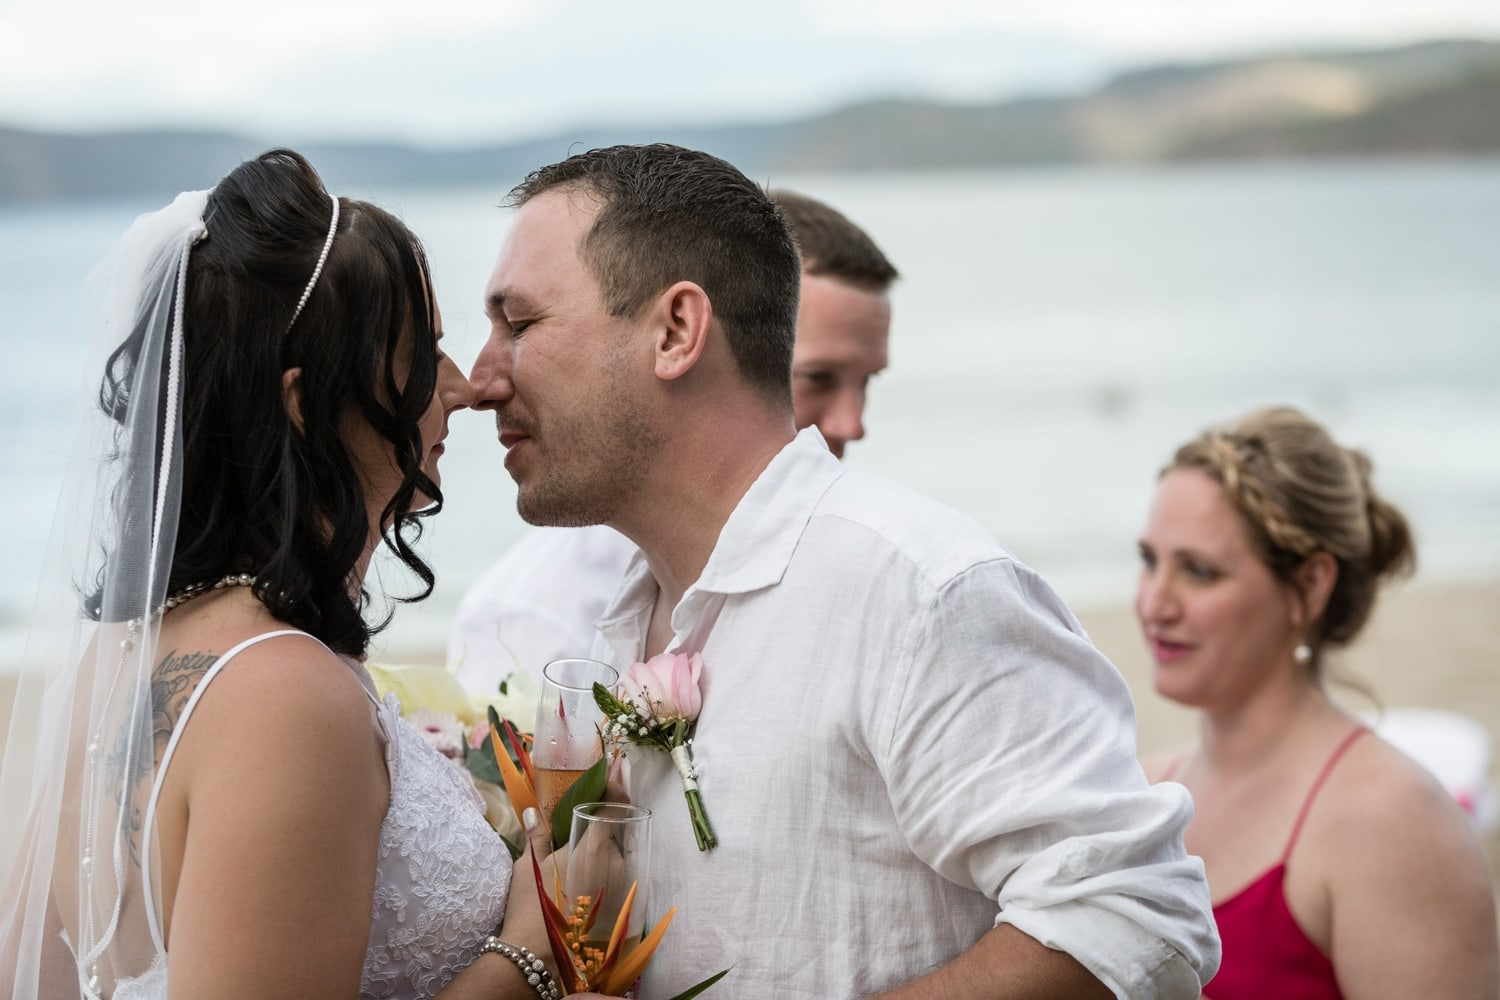 Bride and groom about to kiss after saying vows on beach.